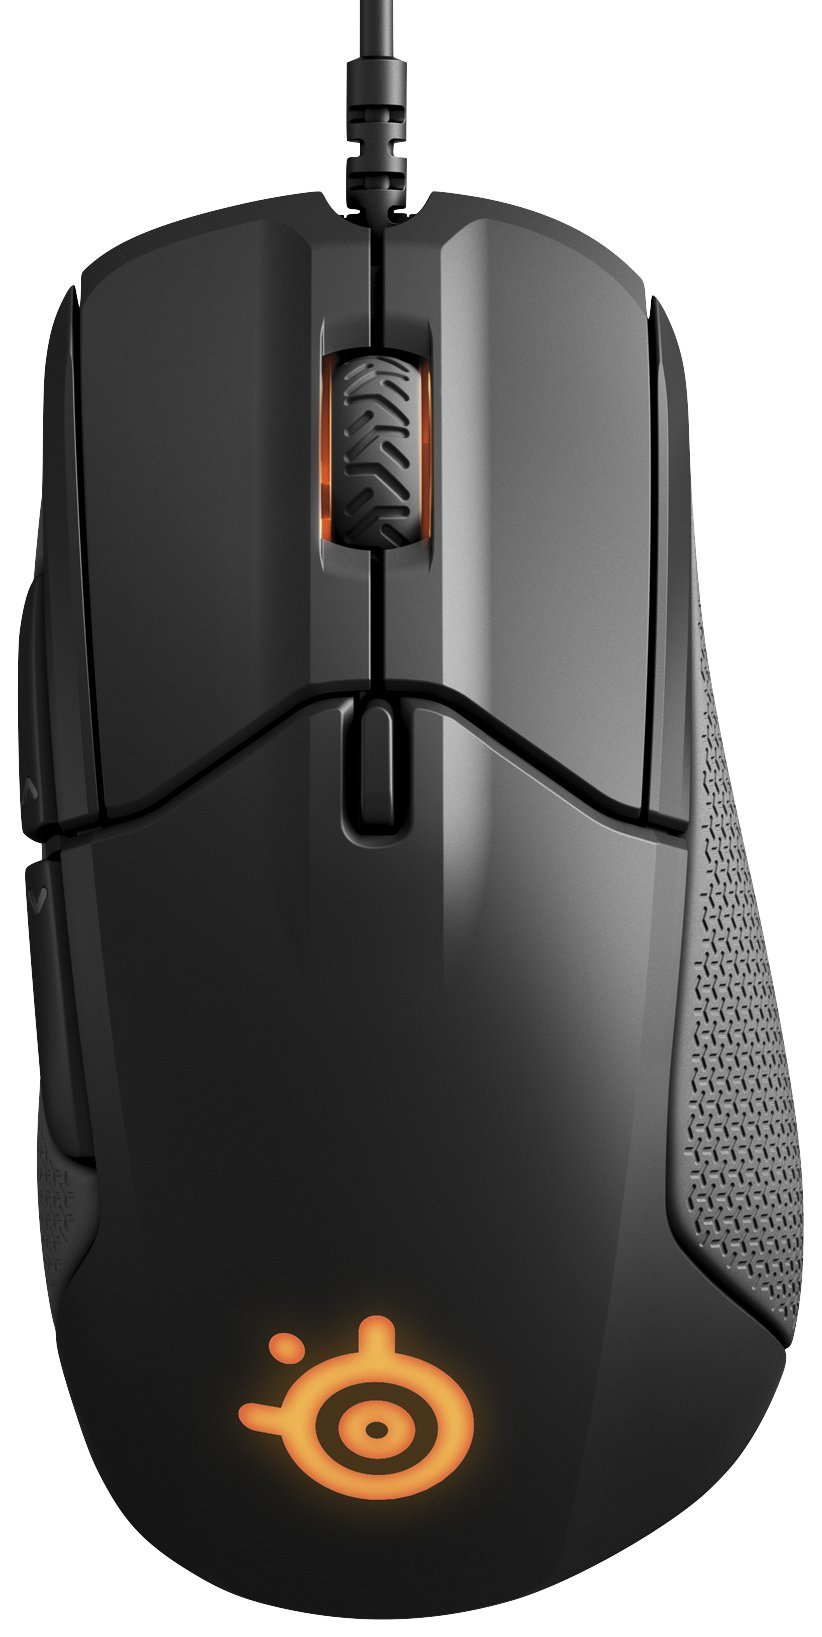 SteelSeries Rival 310 Gaming Mouse - 12,000 CPI TrueMove3 Optical Sensor - Split-Trigger Buttons - RGB Lighting by SteelSeries